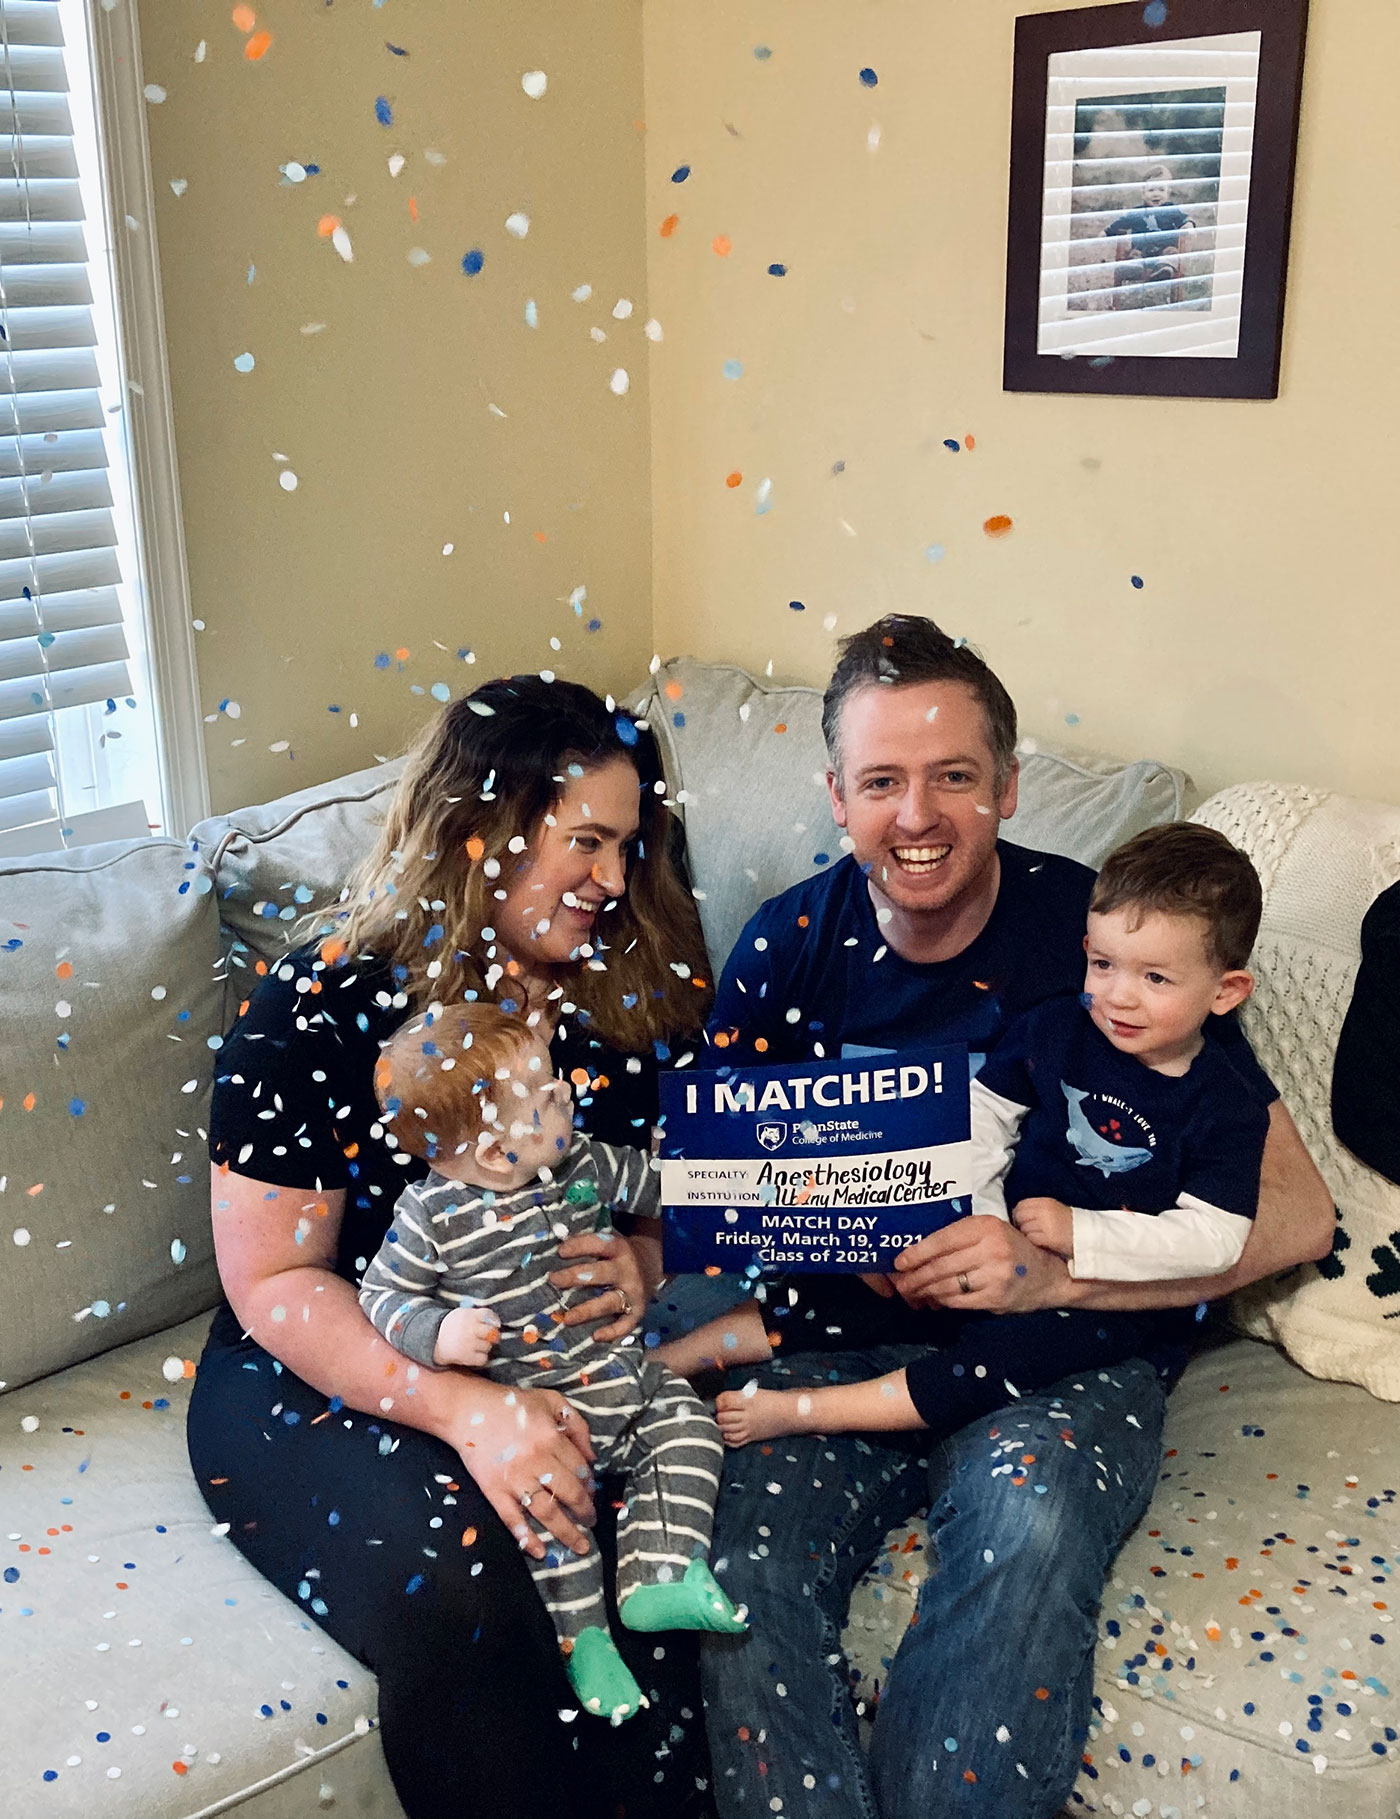 A man, woman and two small children sit on a sofa. Glitter was just tossed over them. The man holds an I Matched sign for Anesthesiology.